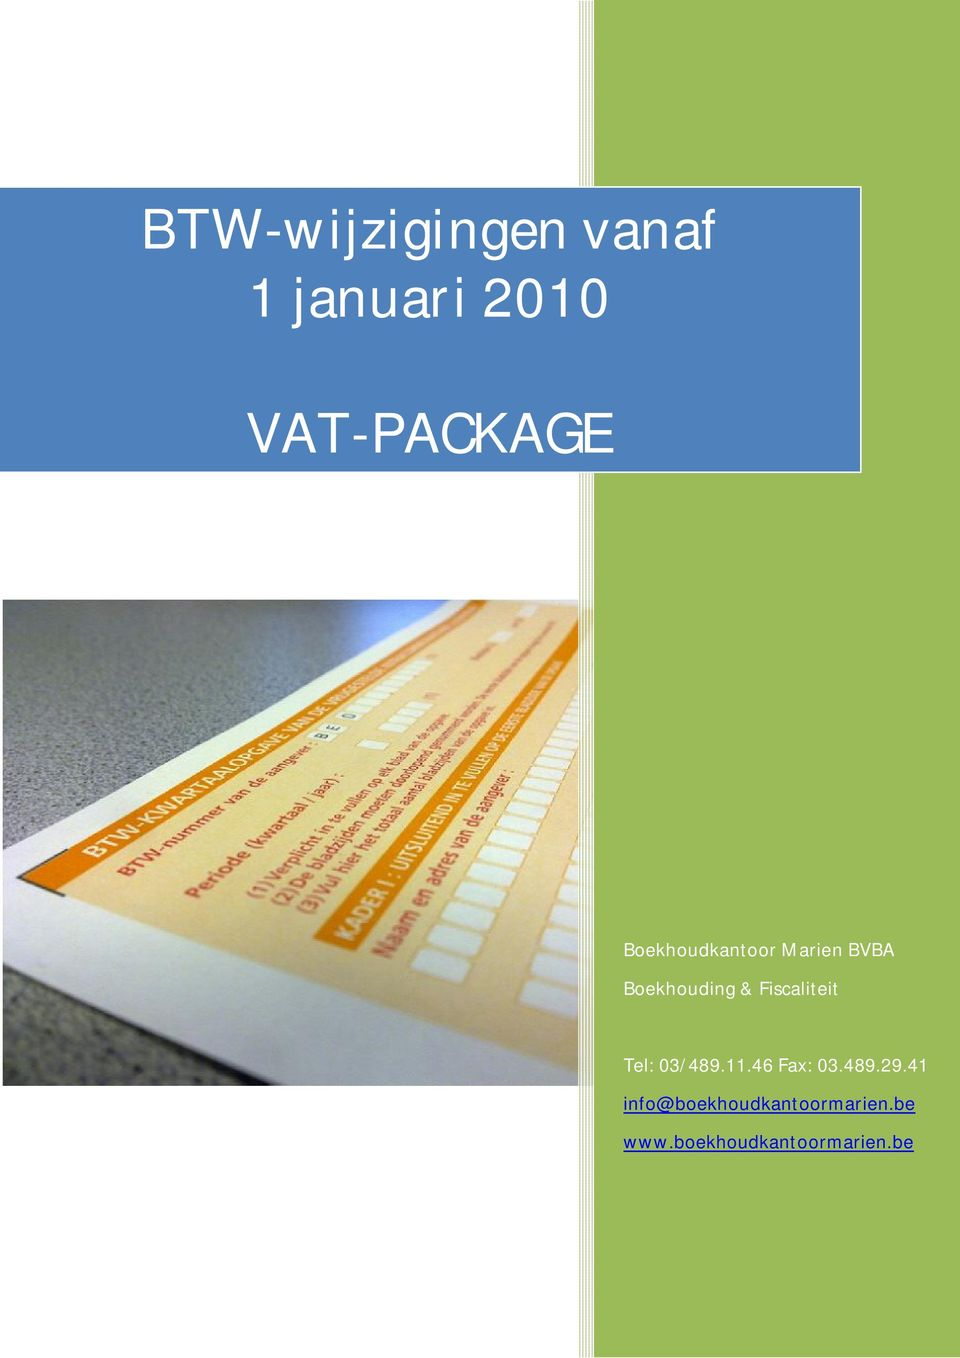 Fiscaliteit Tel: 03/489.11.46 Fax: 03.489.29.